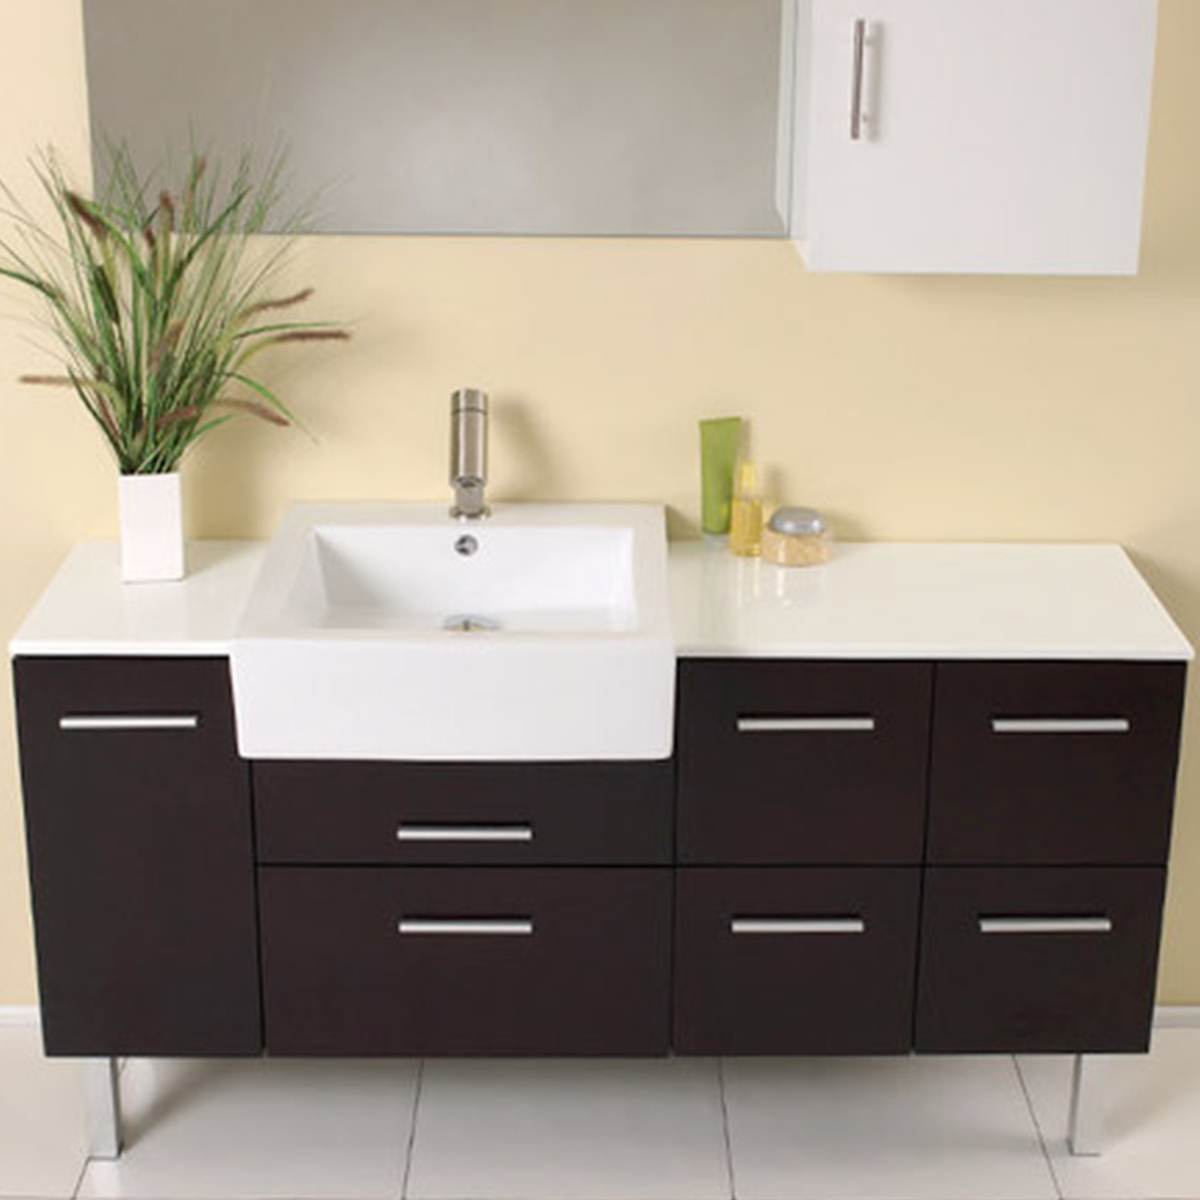 Freestanding bathroom vanity with brown base and white rectangular sink photo